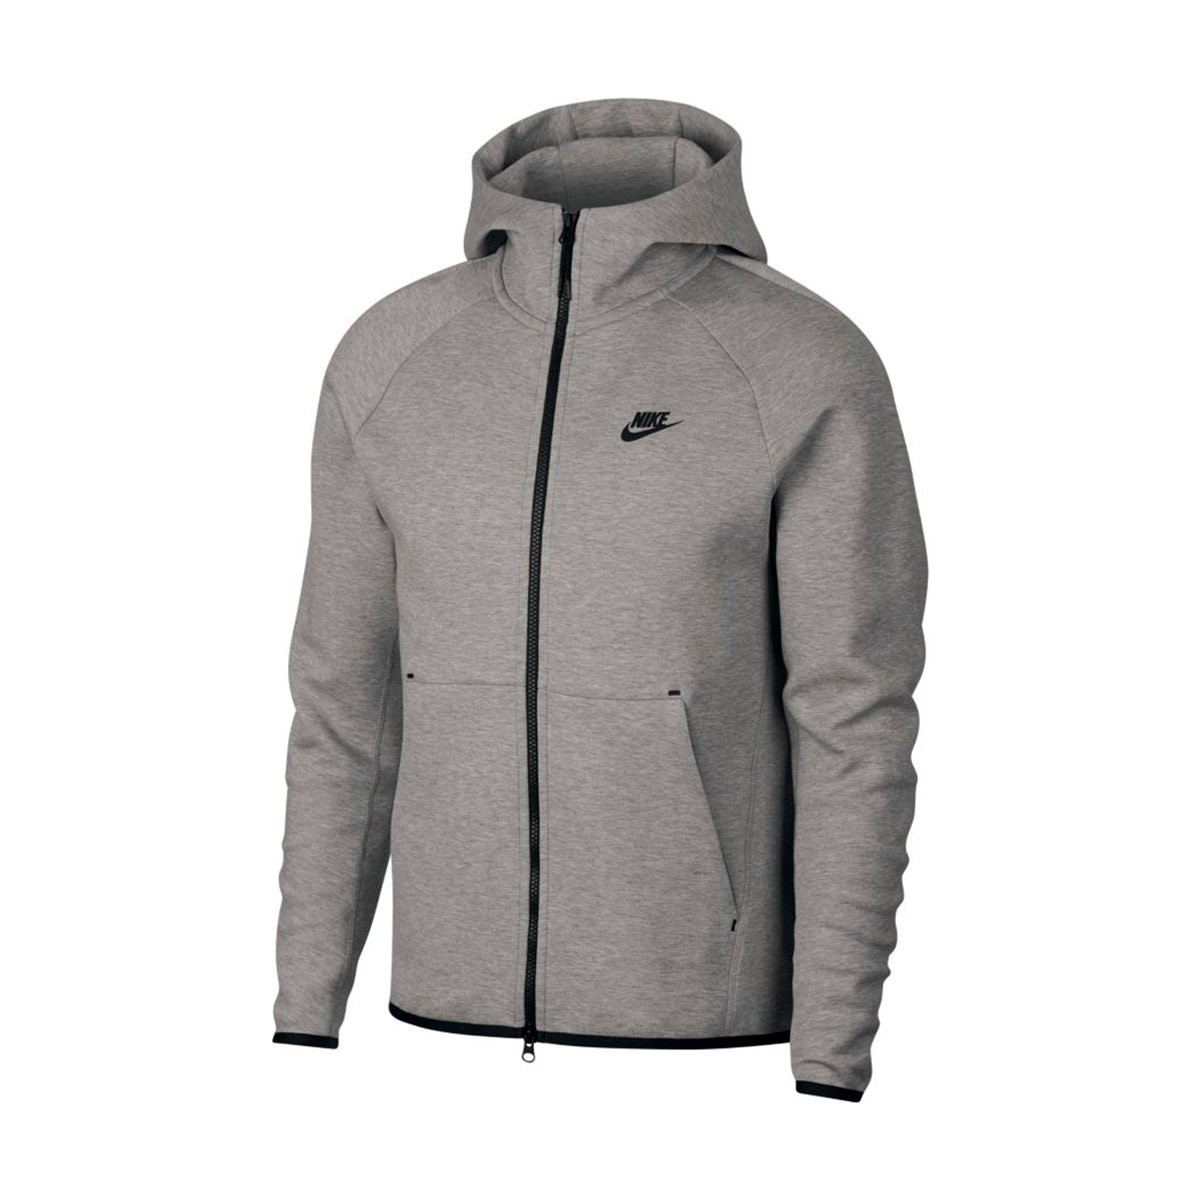 ebf628080 Nike Sportswear Tech Fleece 2019 Jacket. Dark grey heather-Black ...